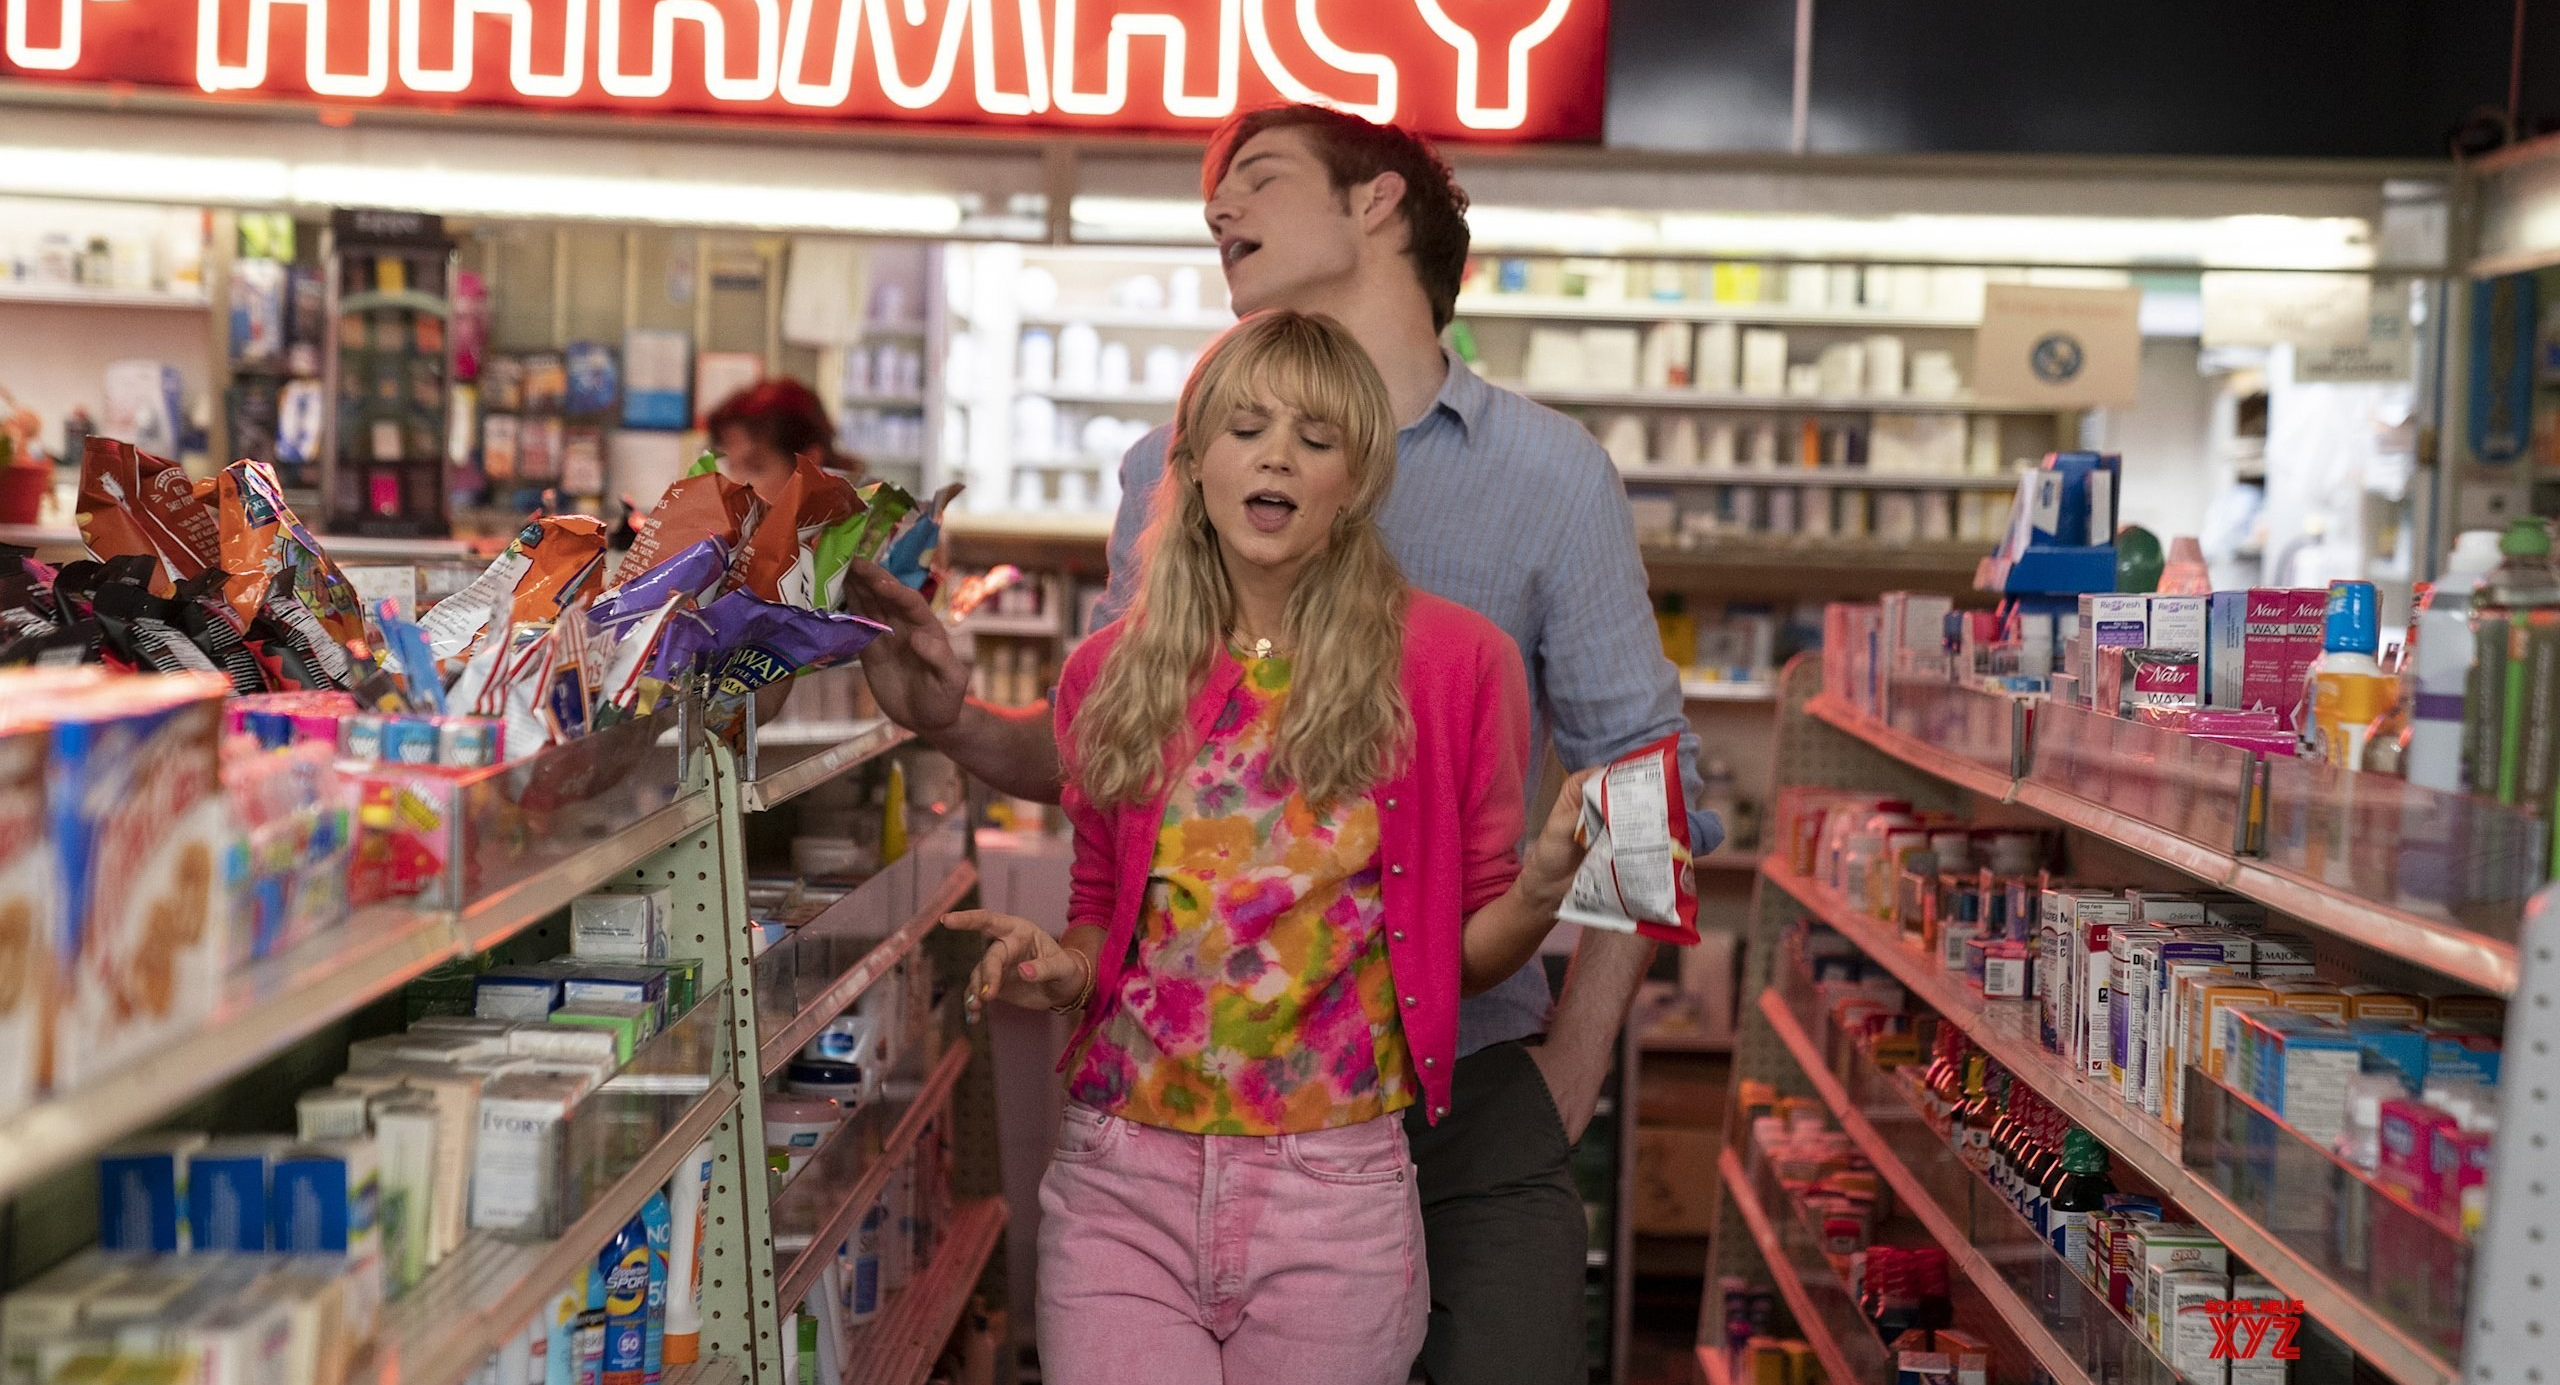 Bo Burnham and Carey Mulligan in 'Promising Young Woman'. They are walking down an isle in a drugstore, singing along to a song.